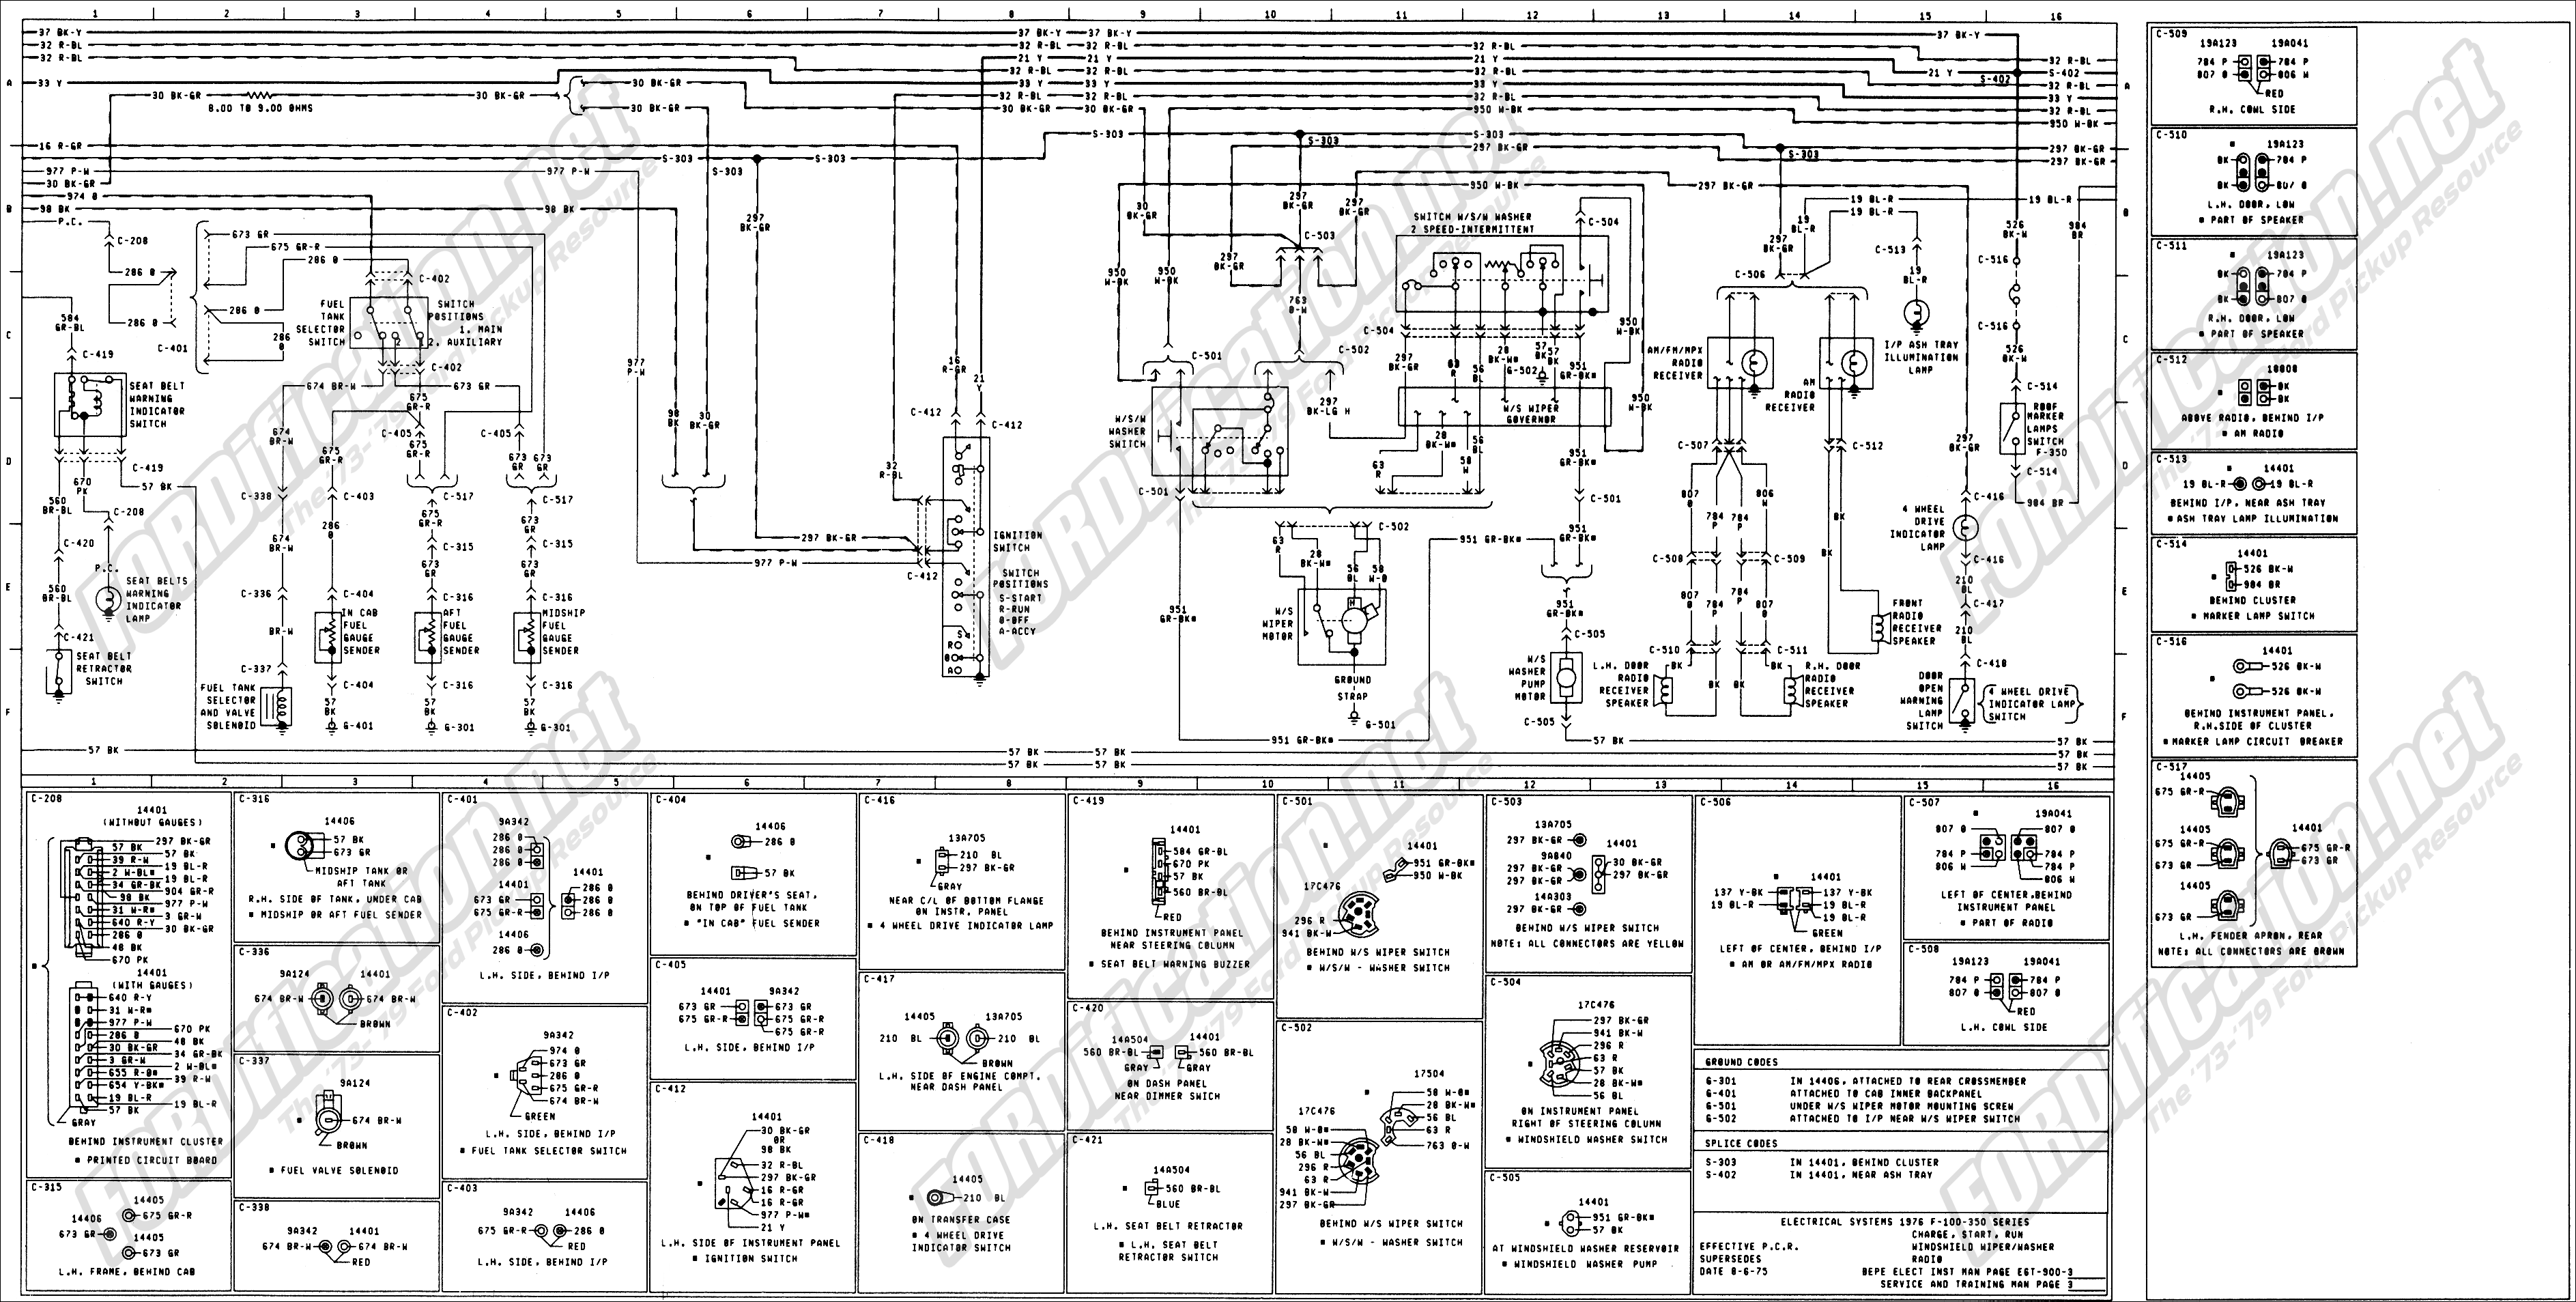 1984 Ford Pickup Instrument Panel Wiring Diagram Data Find 2004 4x4 F150 Fuse 1973 1979 Truck Diagrams Schematics Fordification Net Speaker Wire